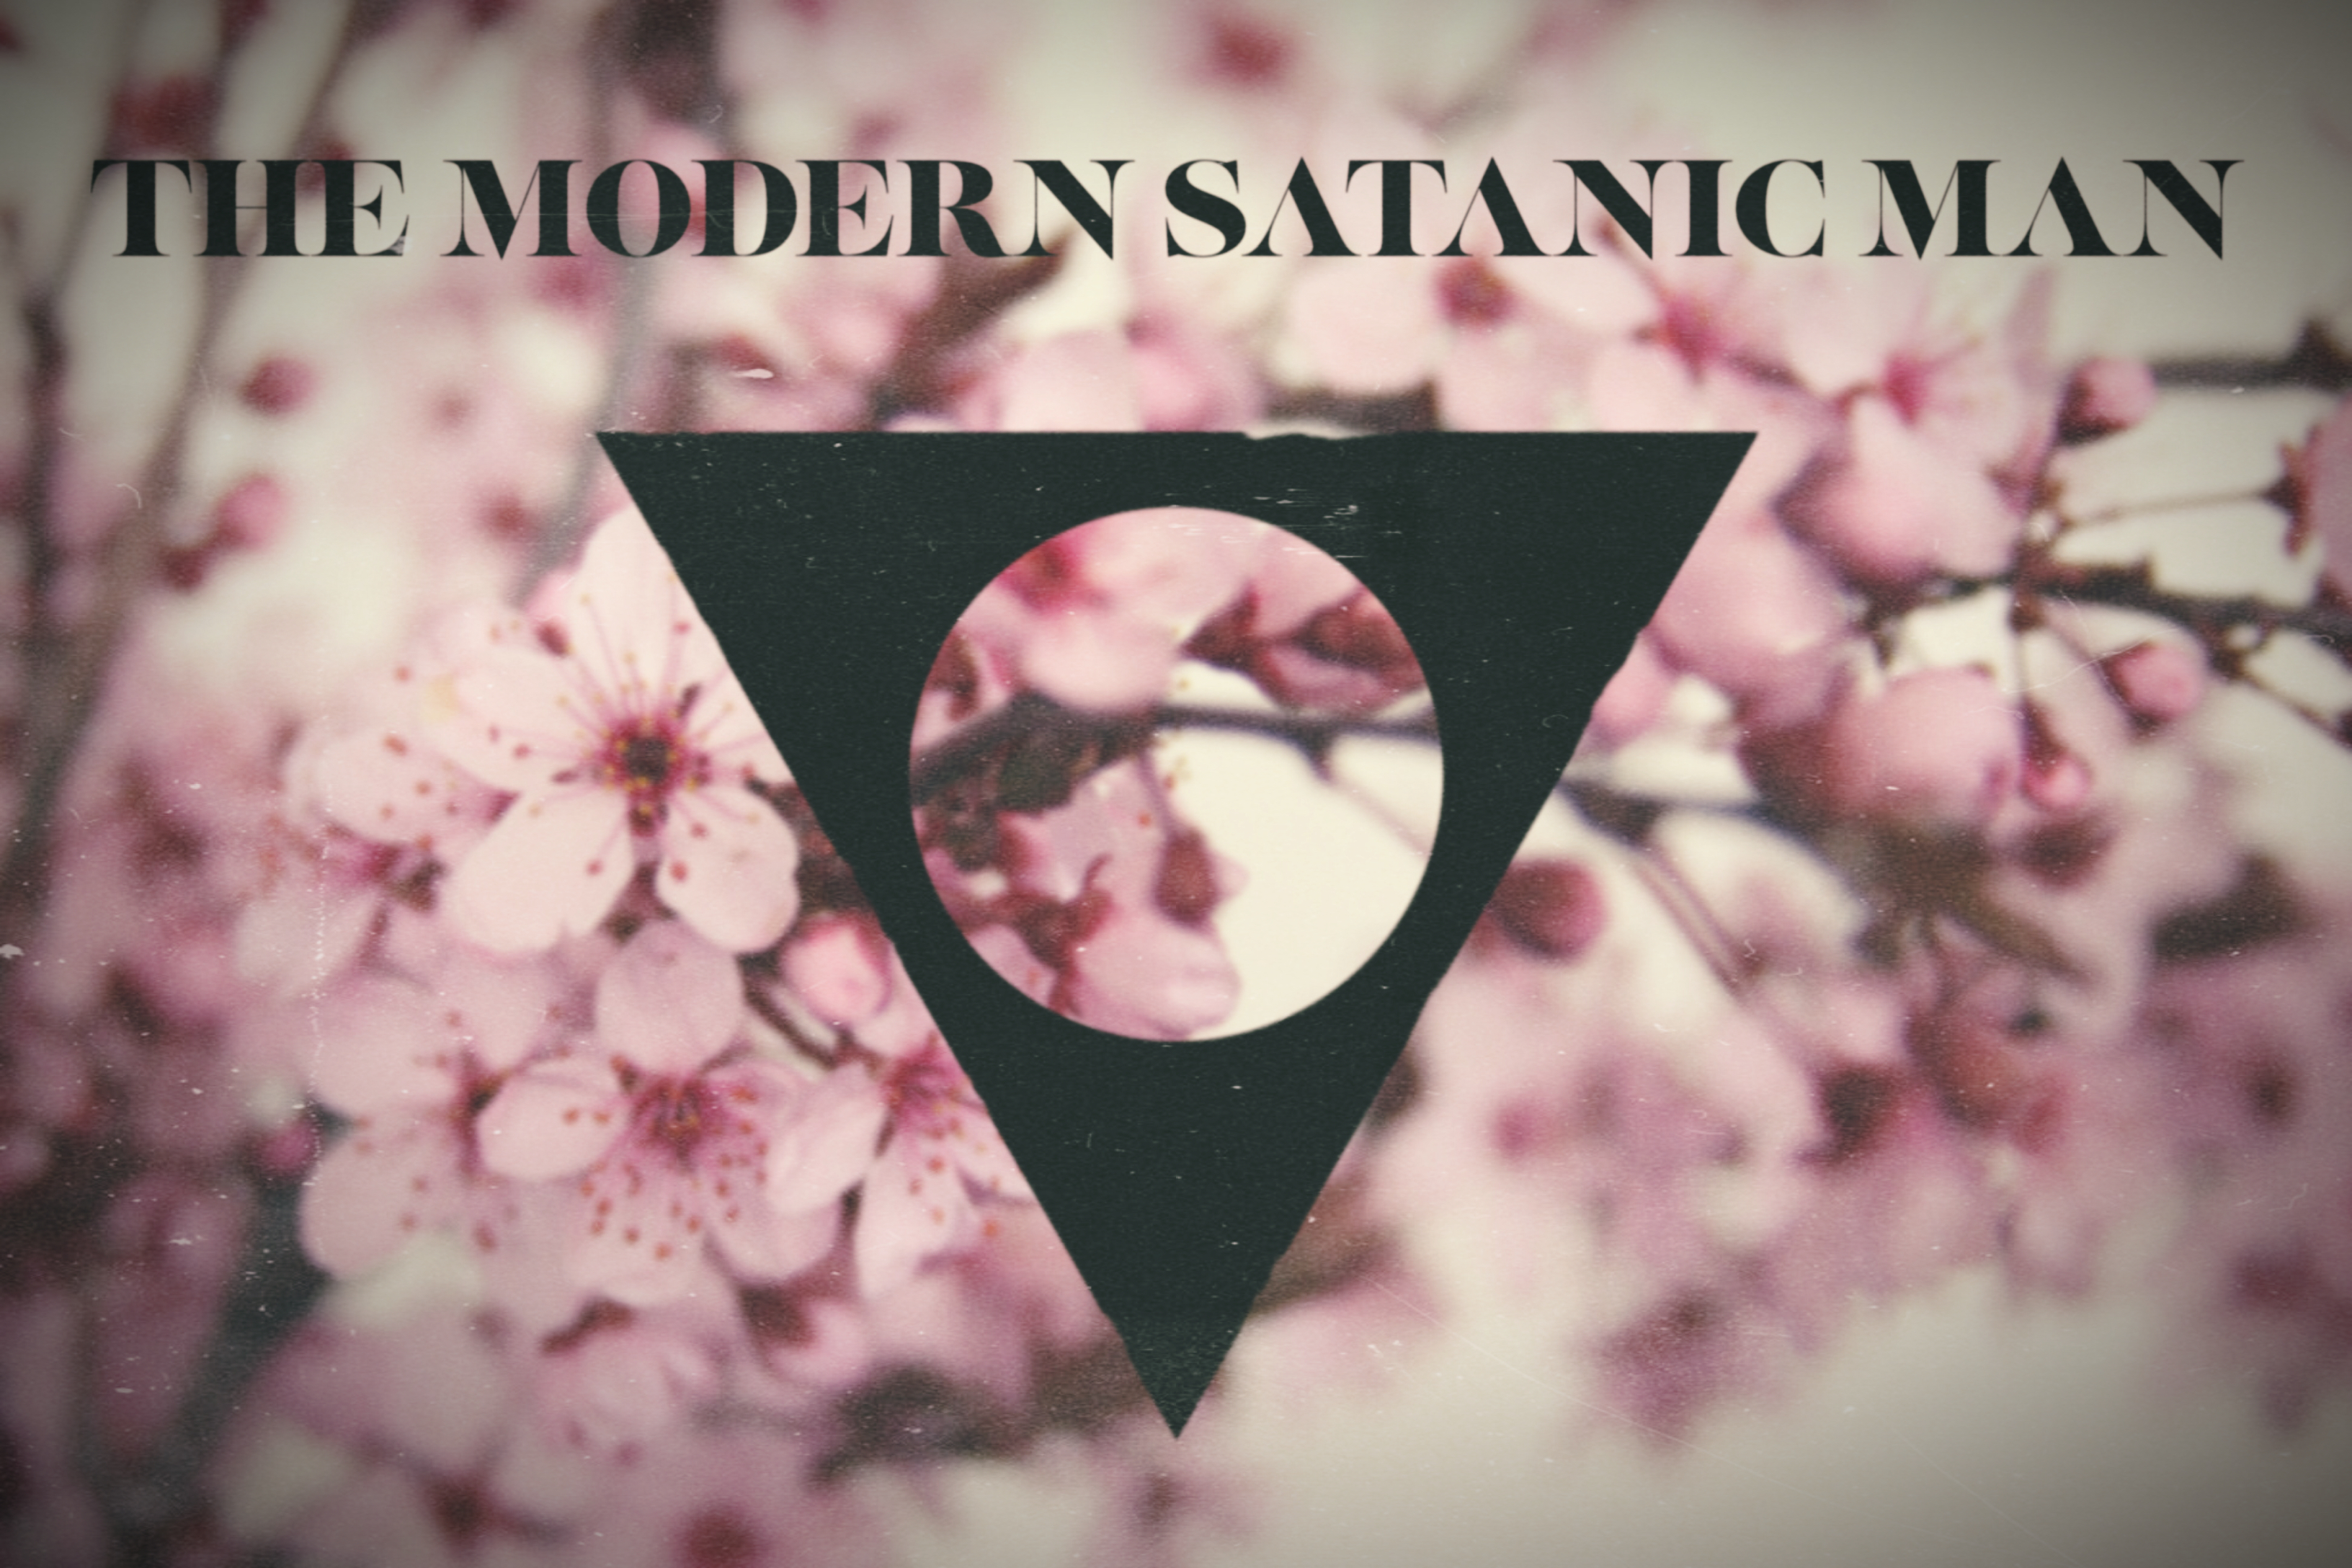 The Modern Satanic Man